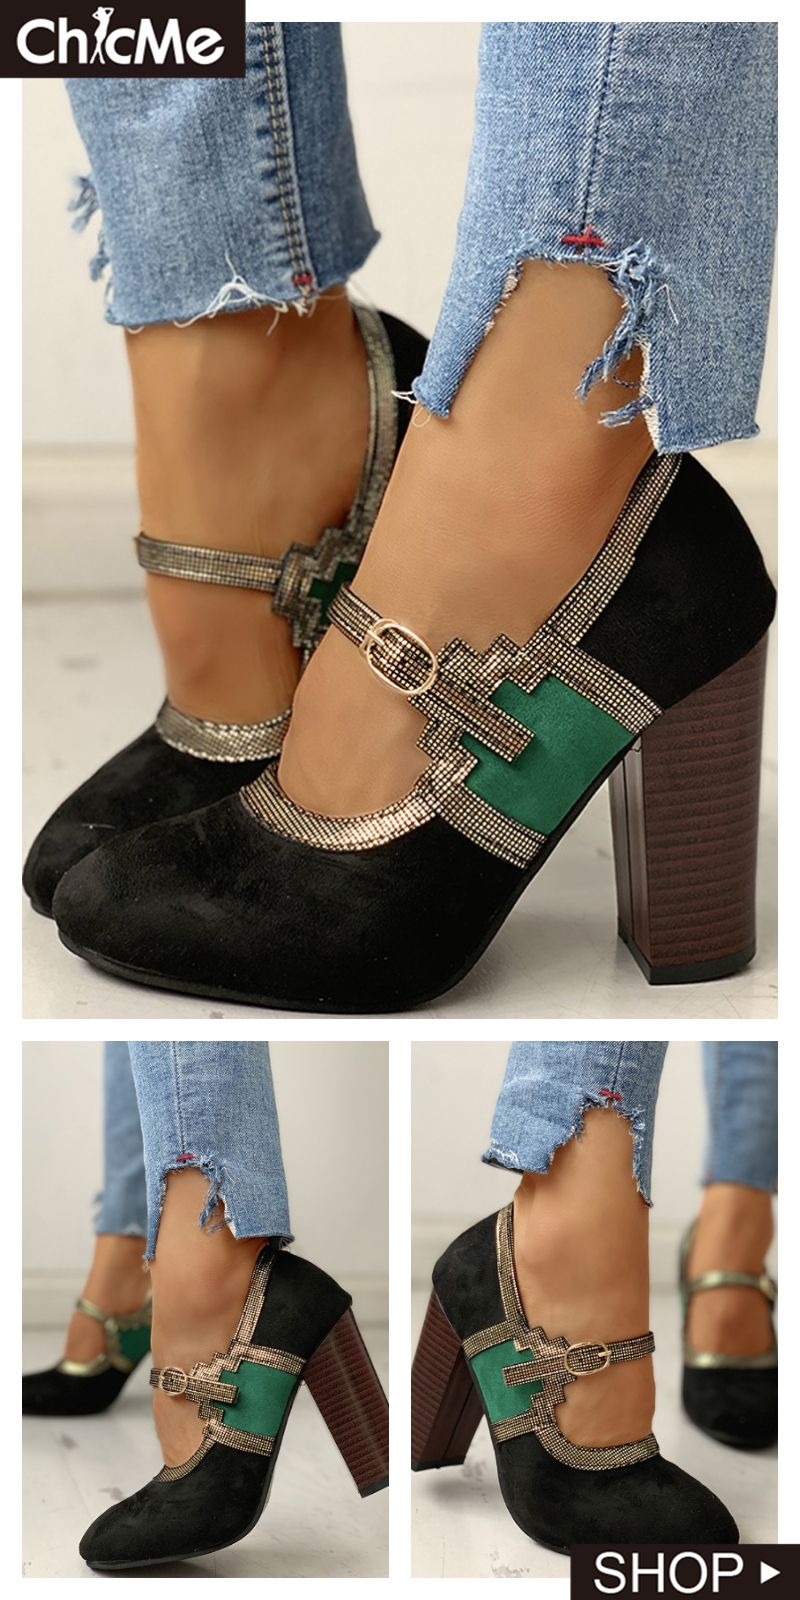 Colorblock Suede Buckled Chunky Sandals